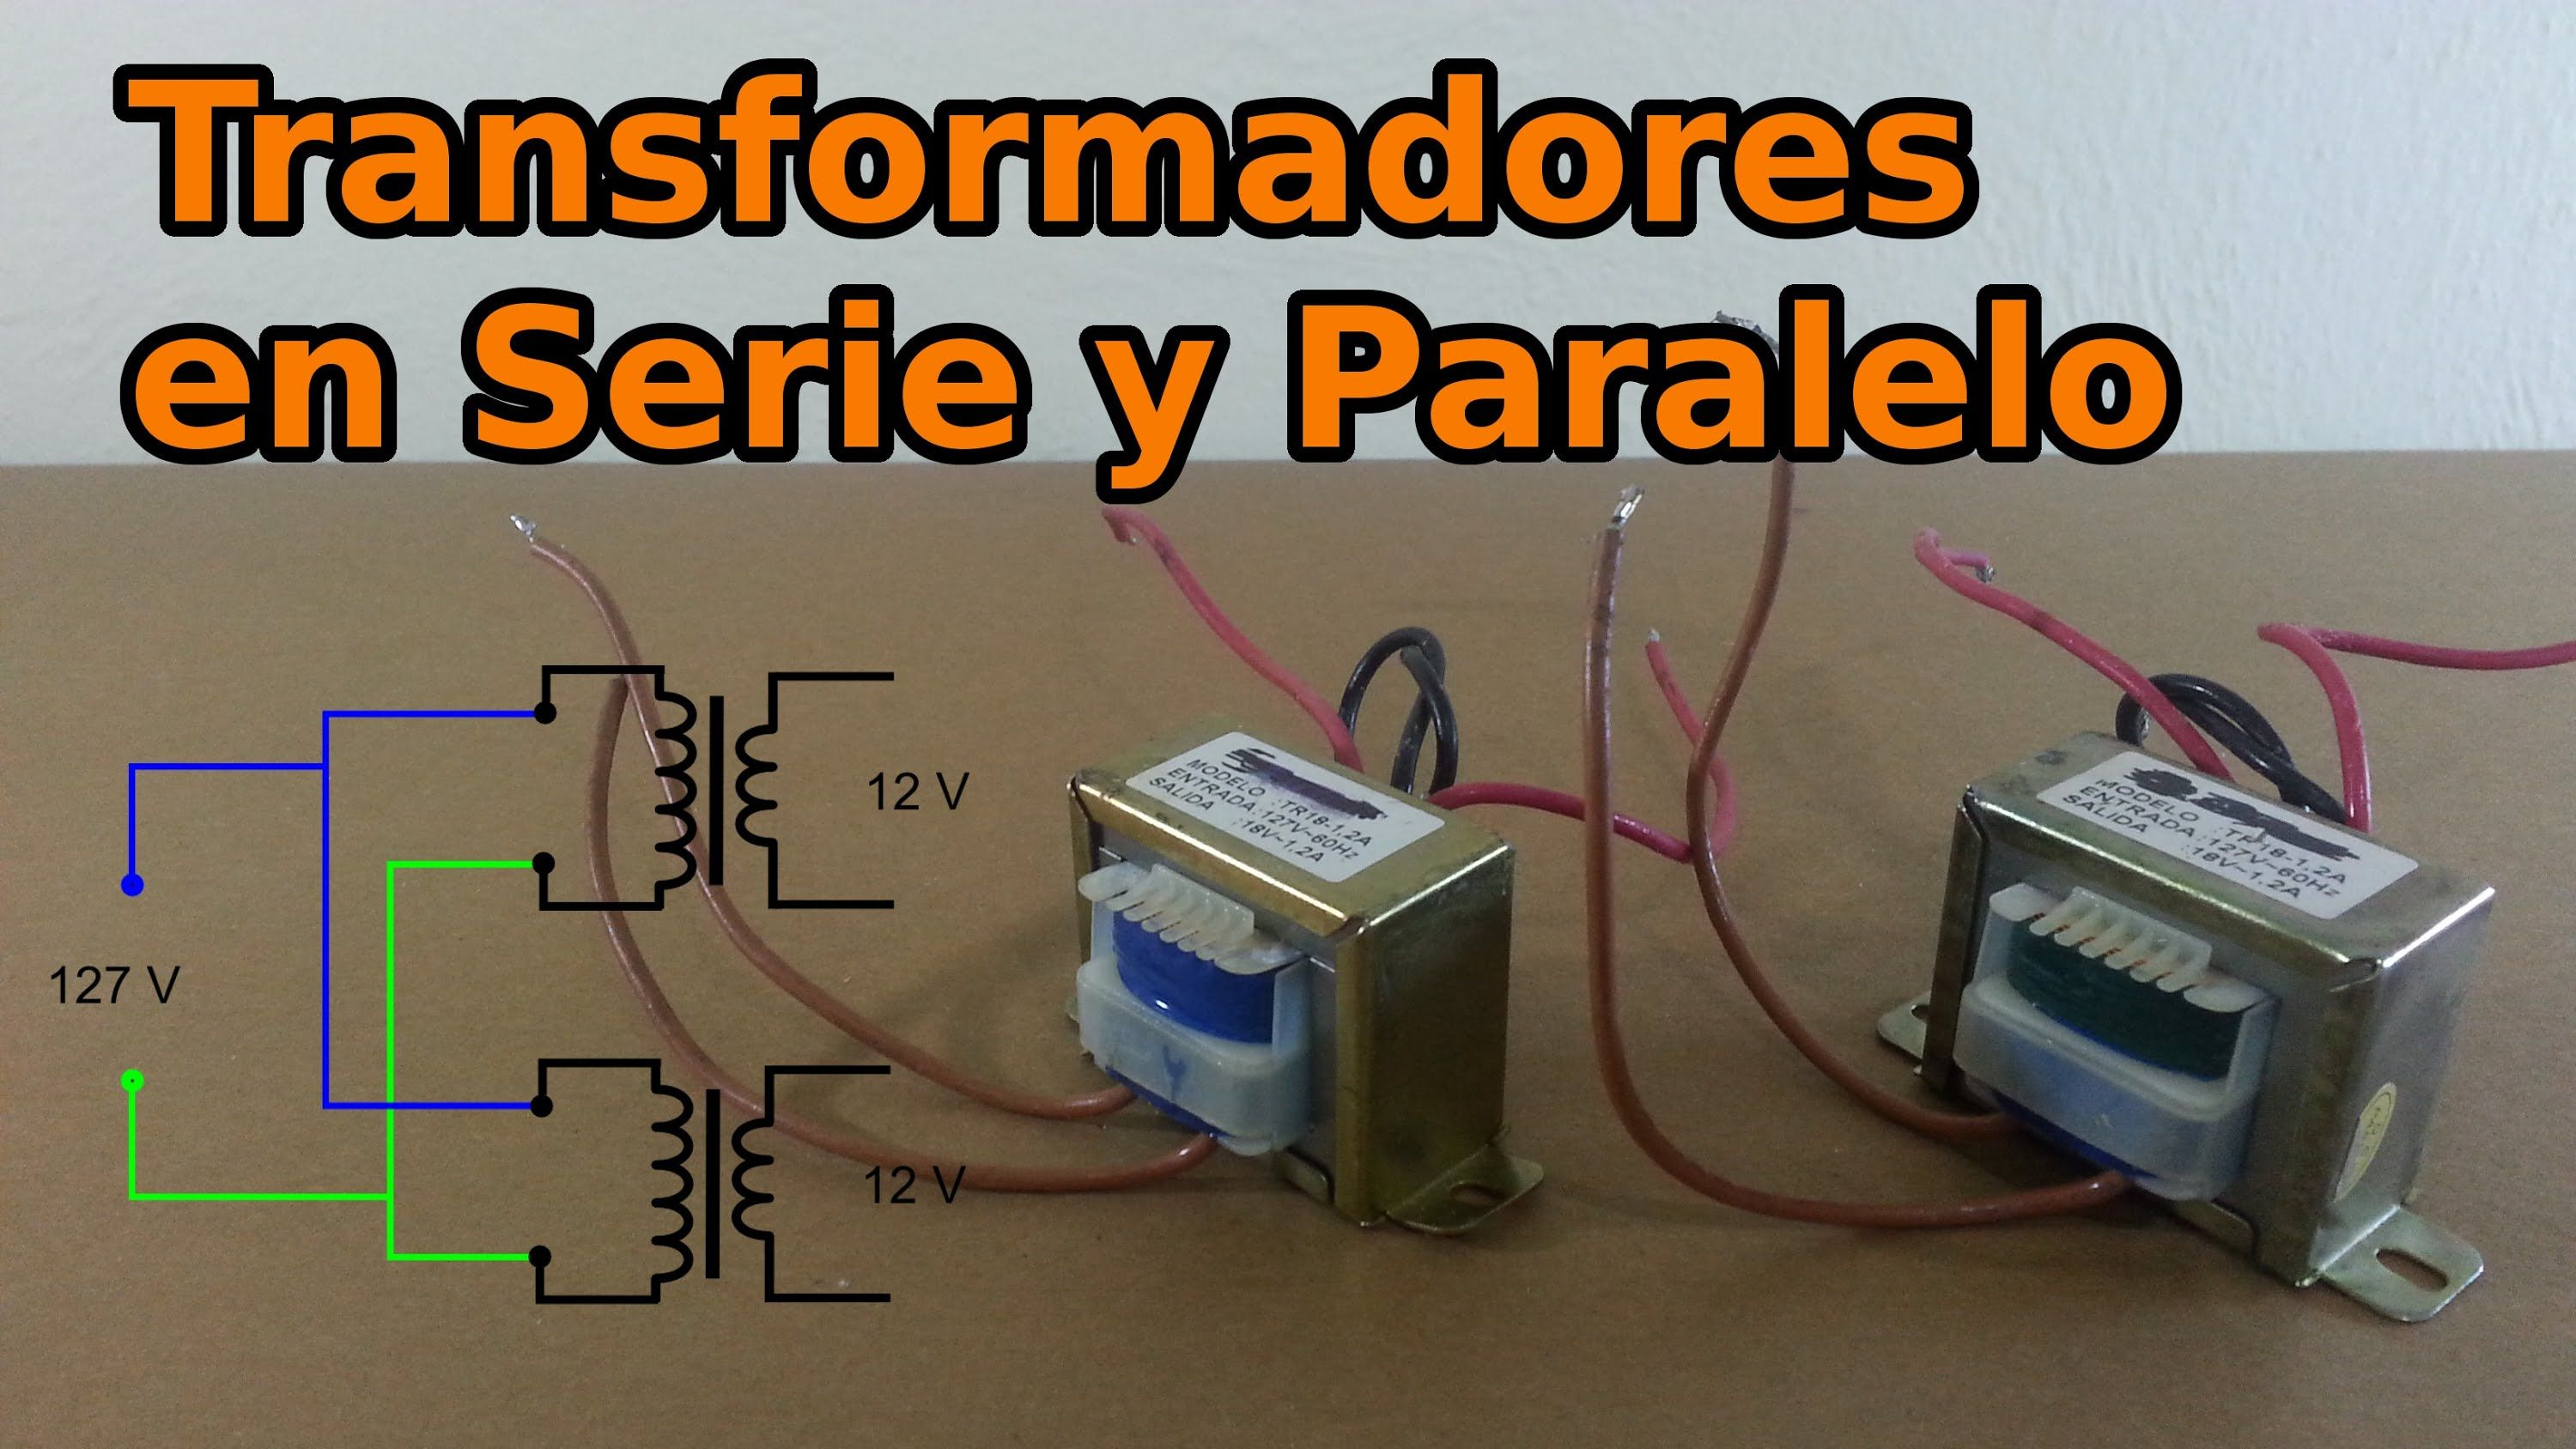 Parallel Vs Series Wiring Transformer | schematic and ...